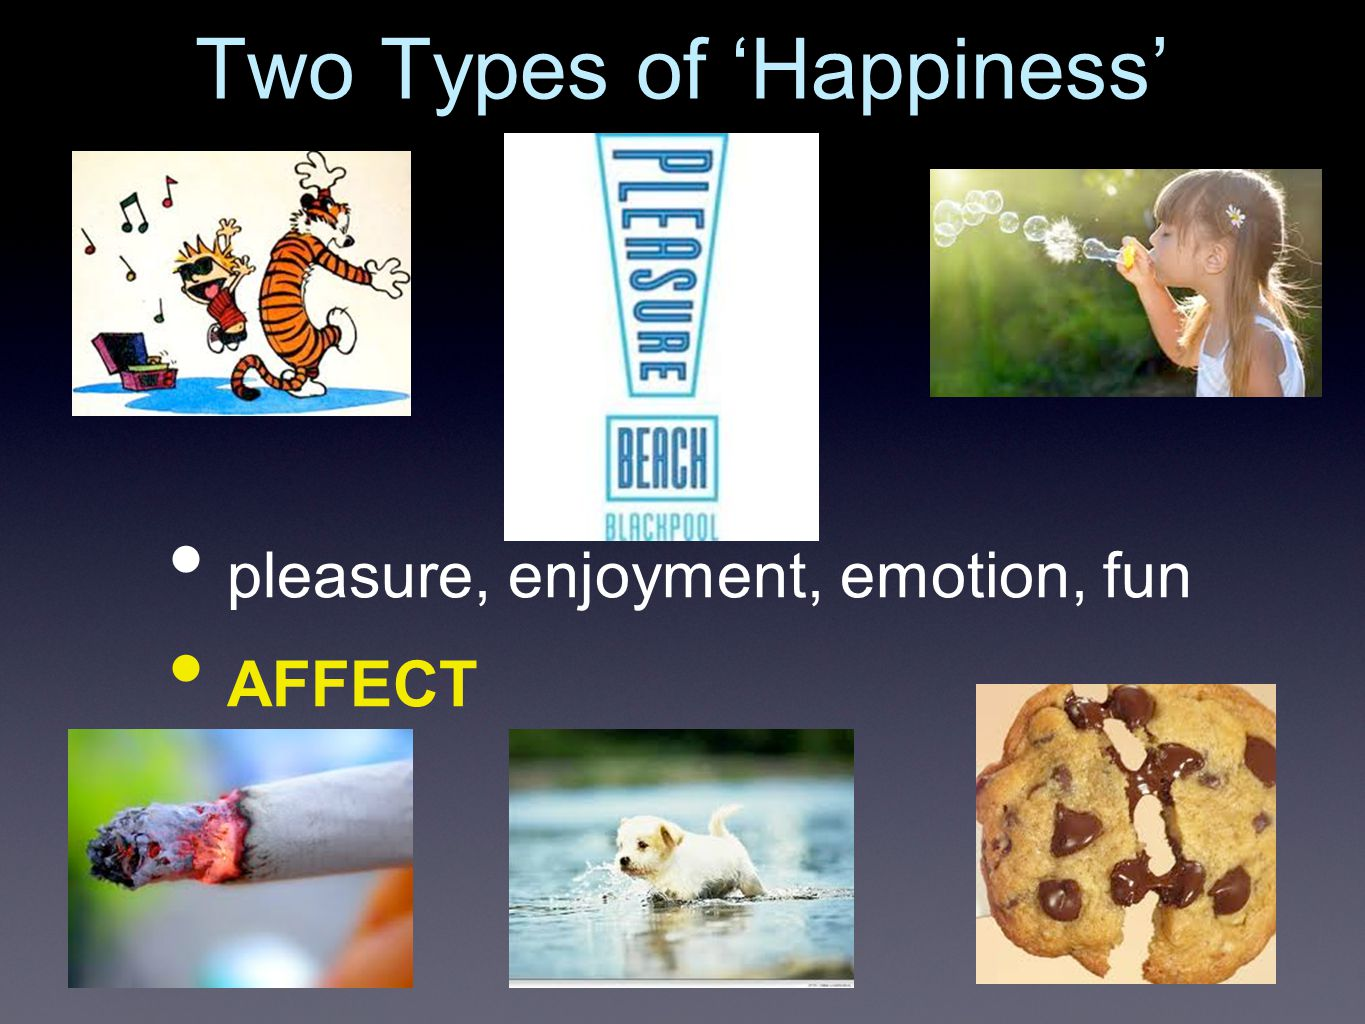 Happiness the Second gratification, contentment, meaning, reflection COGNITION